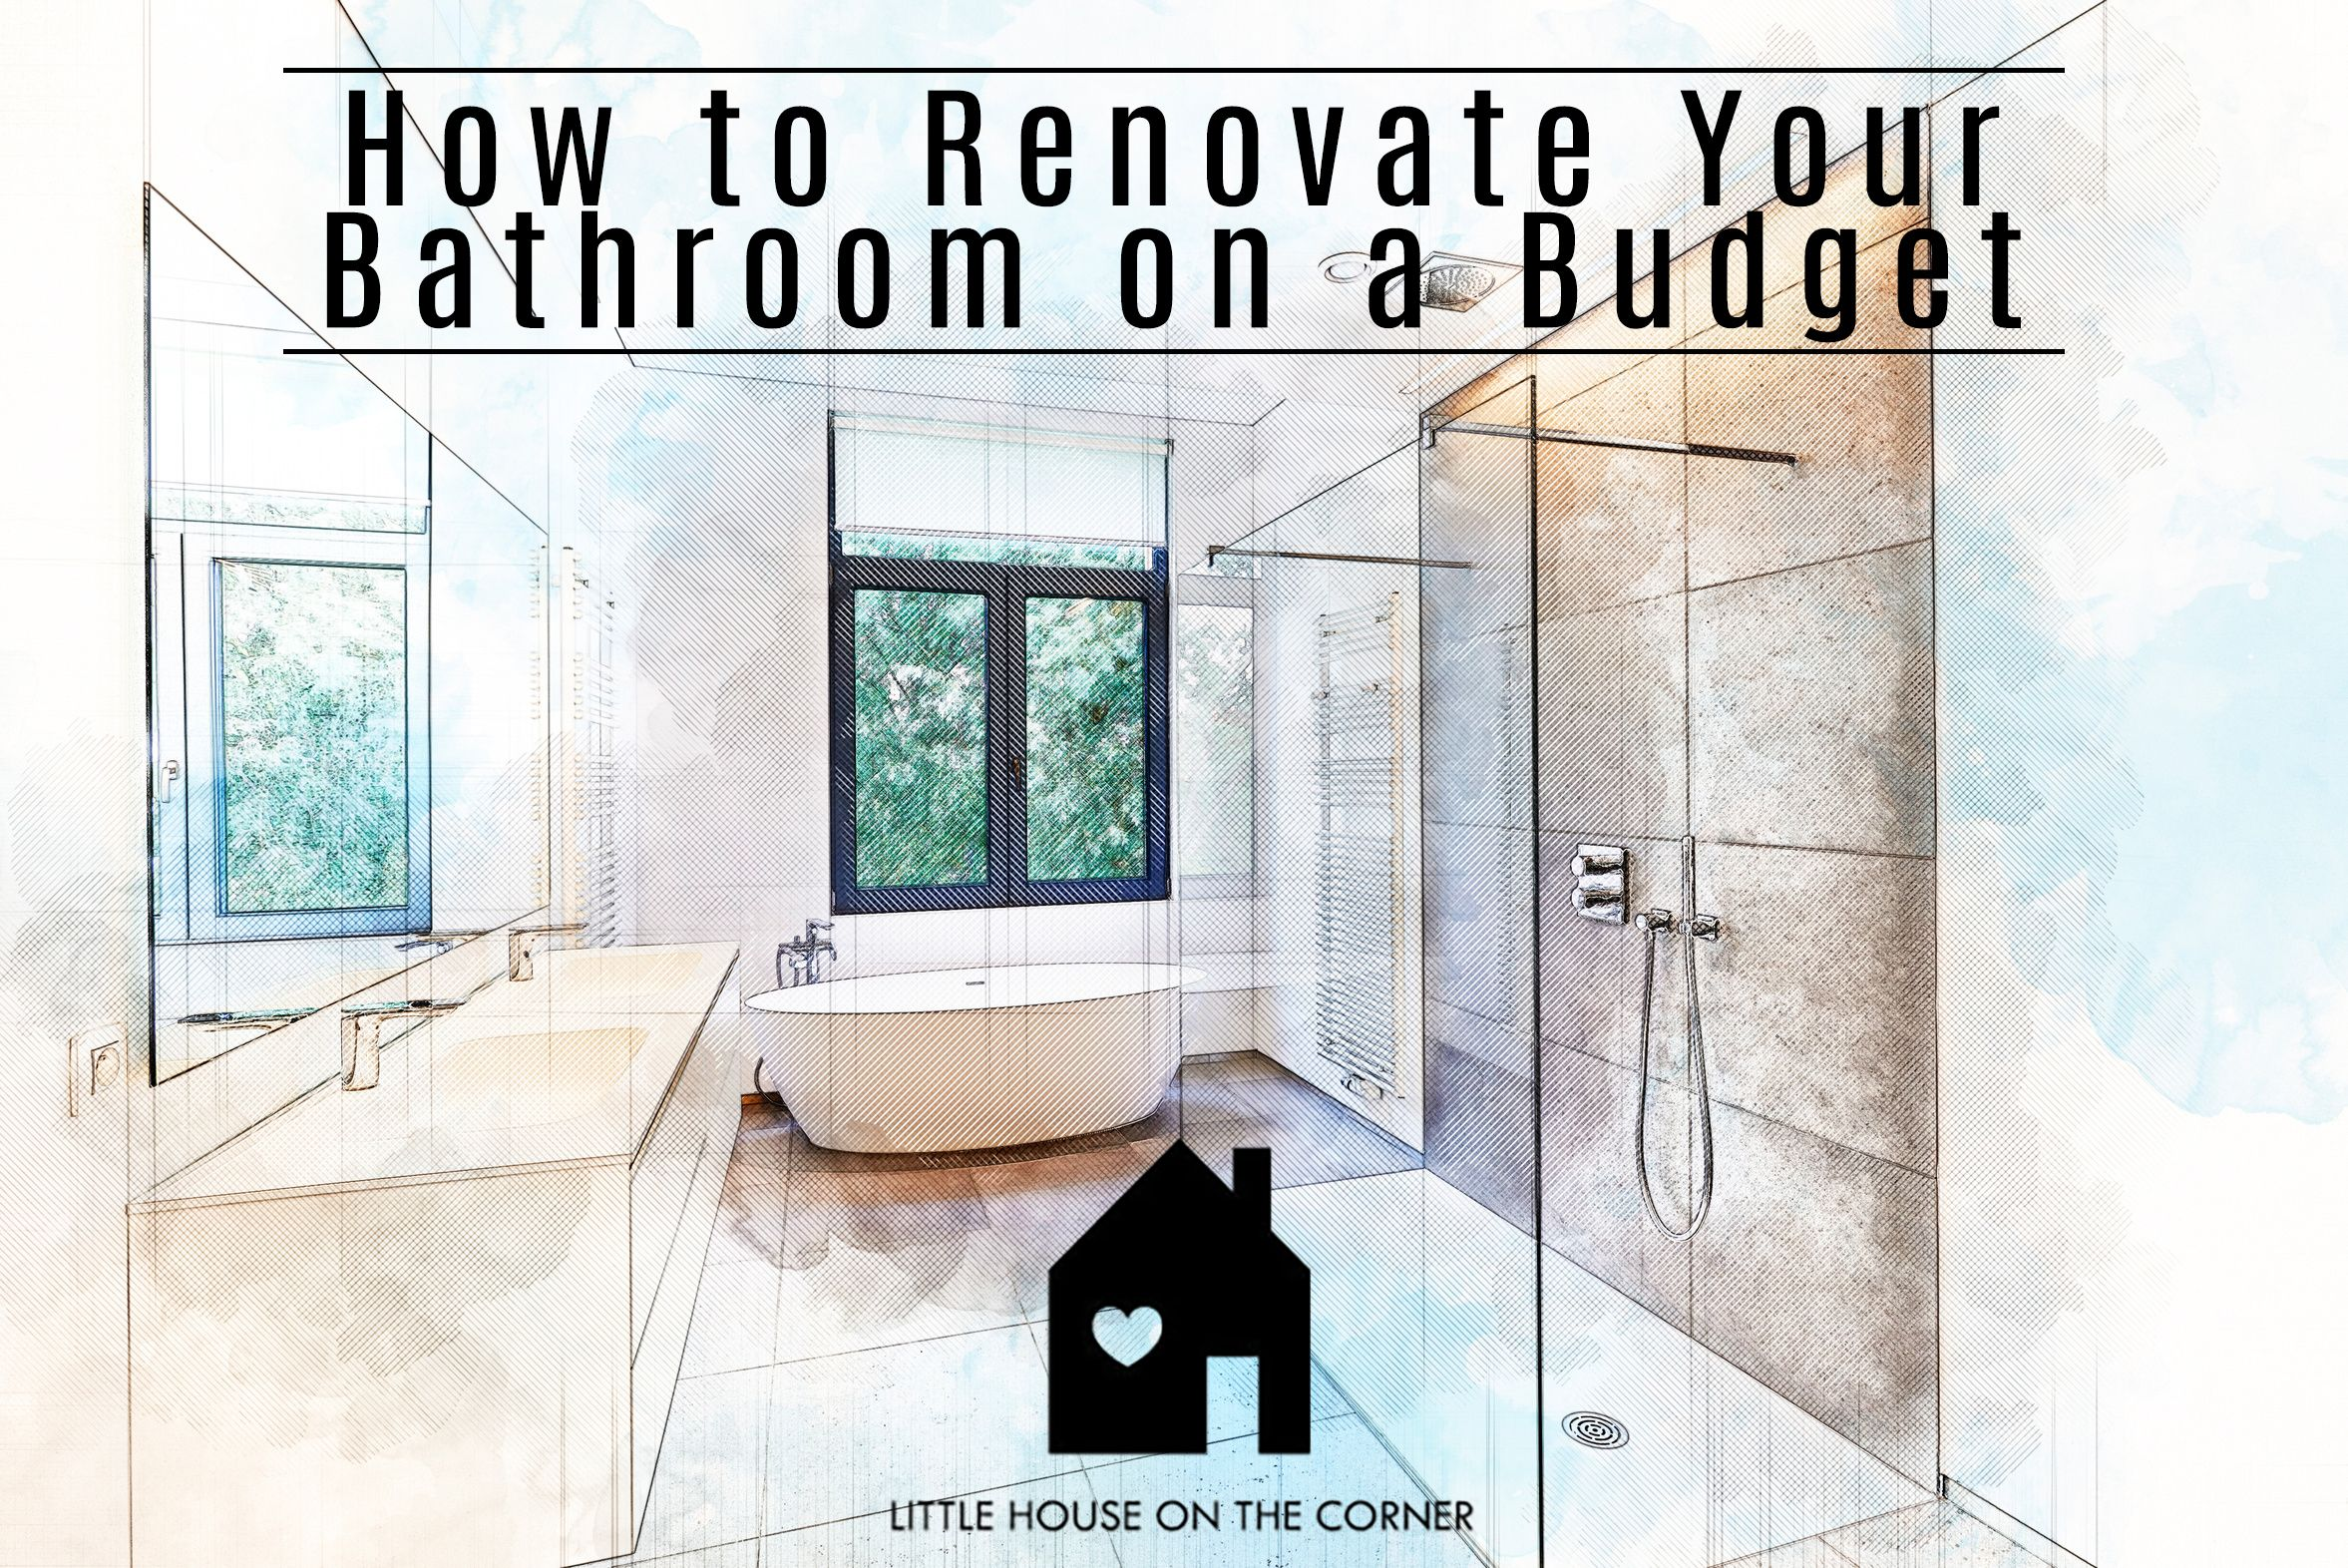 Ideas To Renovate Your Bathroom On A Budget In 2020 Budget Bathroom Renovations Bathroom Images